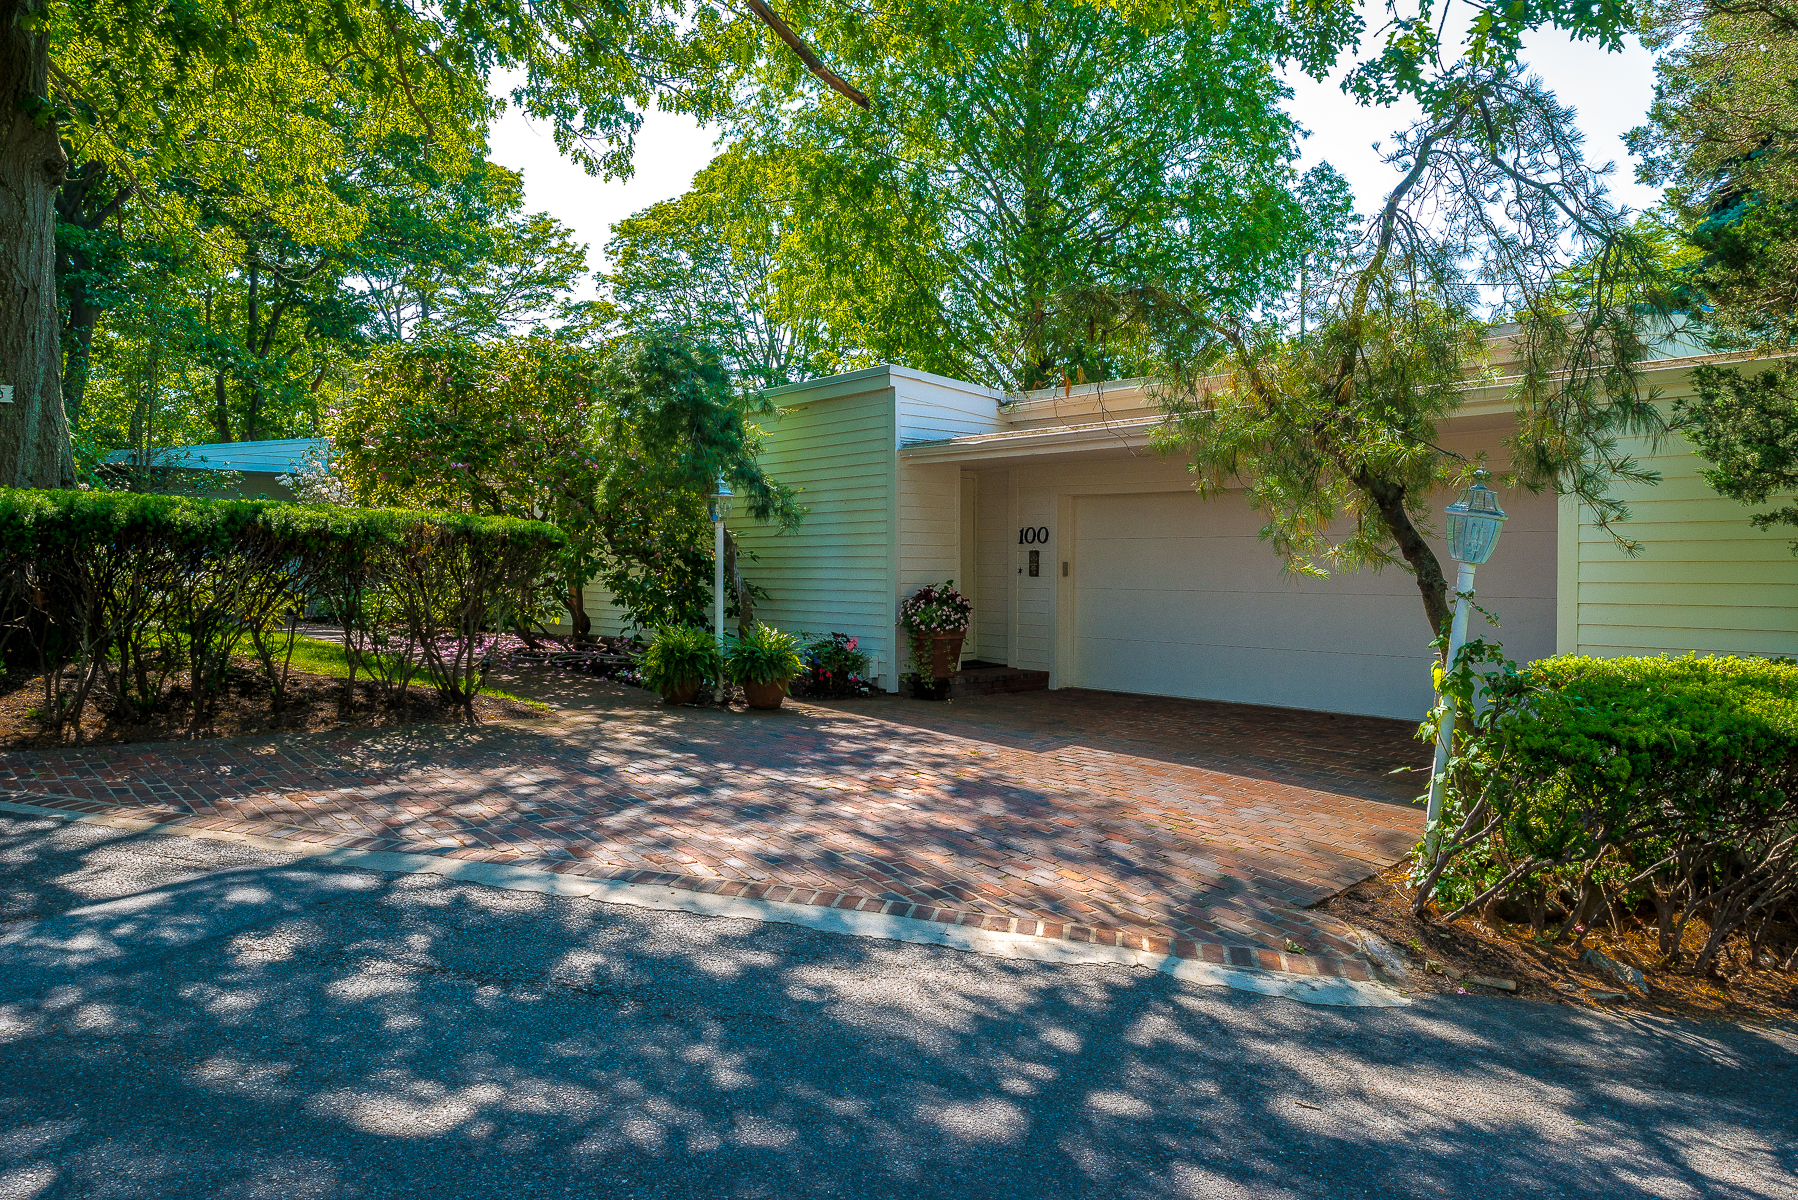 Single Family Home for Sale at Unique One Level Contemporary 100 Puritan Lane Swampscott, Massachusetts, 01907 United States